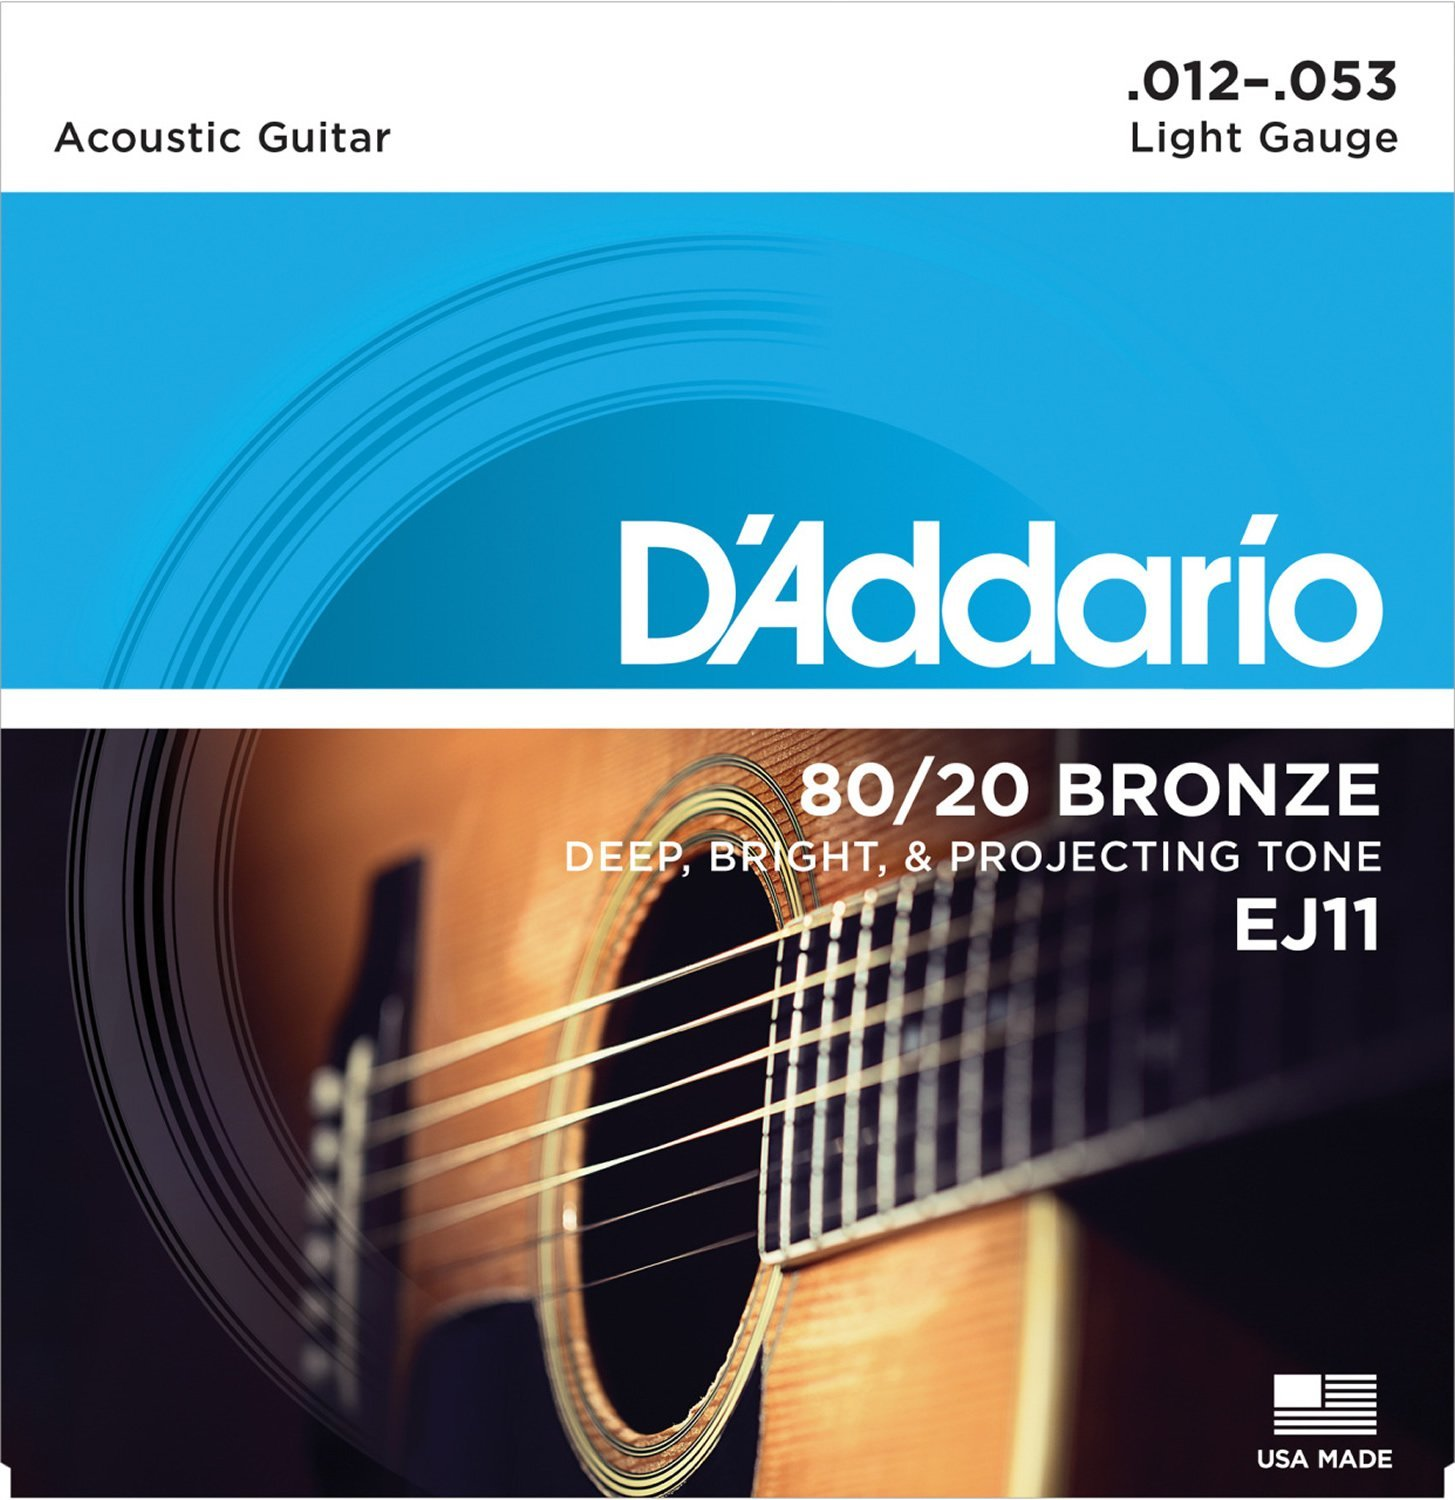 D Addario EJ11 80/20 Bronze Acoustic Guitar Strings Light 12-53  sc 1 st  Jim Laabs Music Store & Strings u2013 Acoustic Guitar u2013 Jim Laabs Music Store islam-shia.org